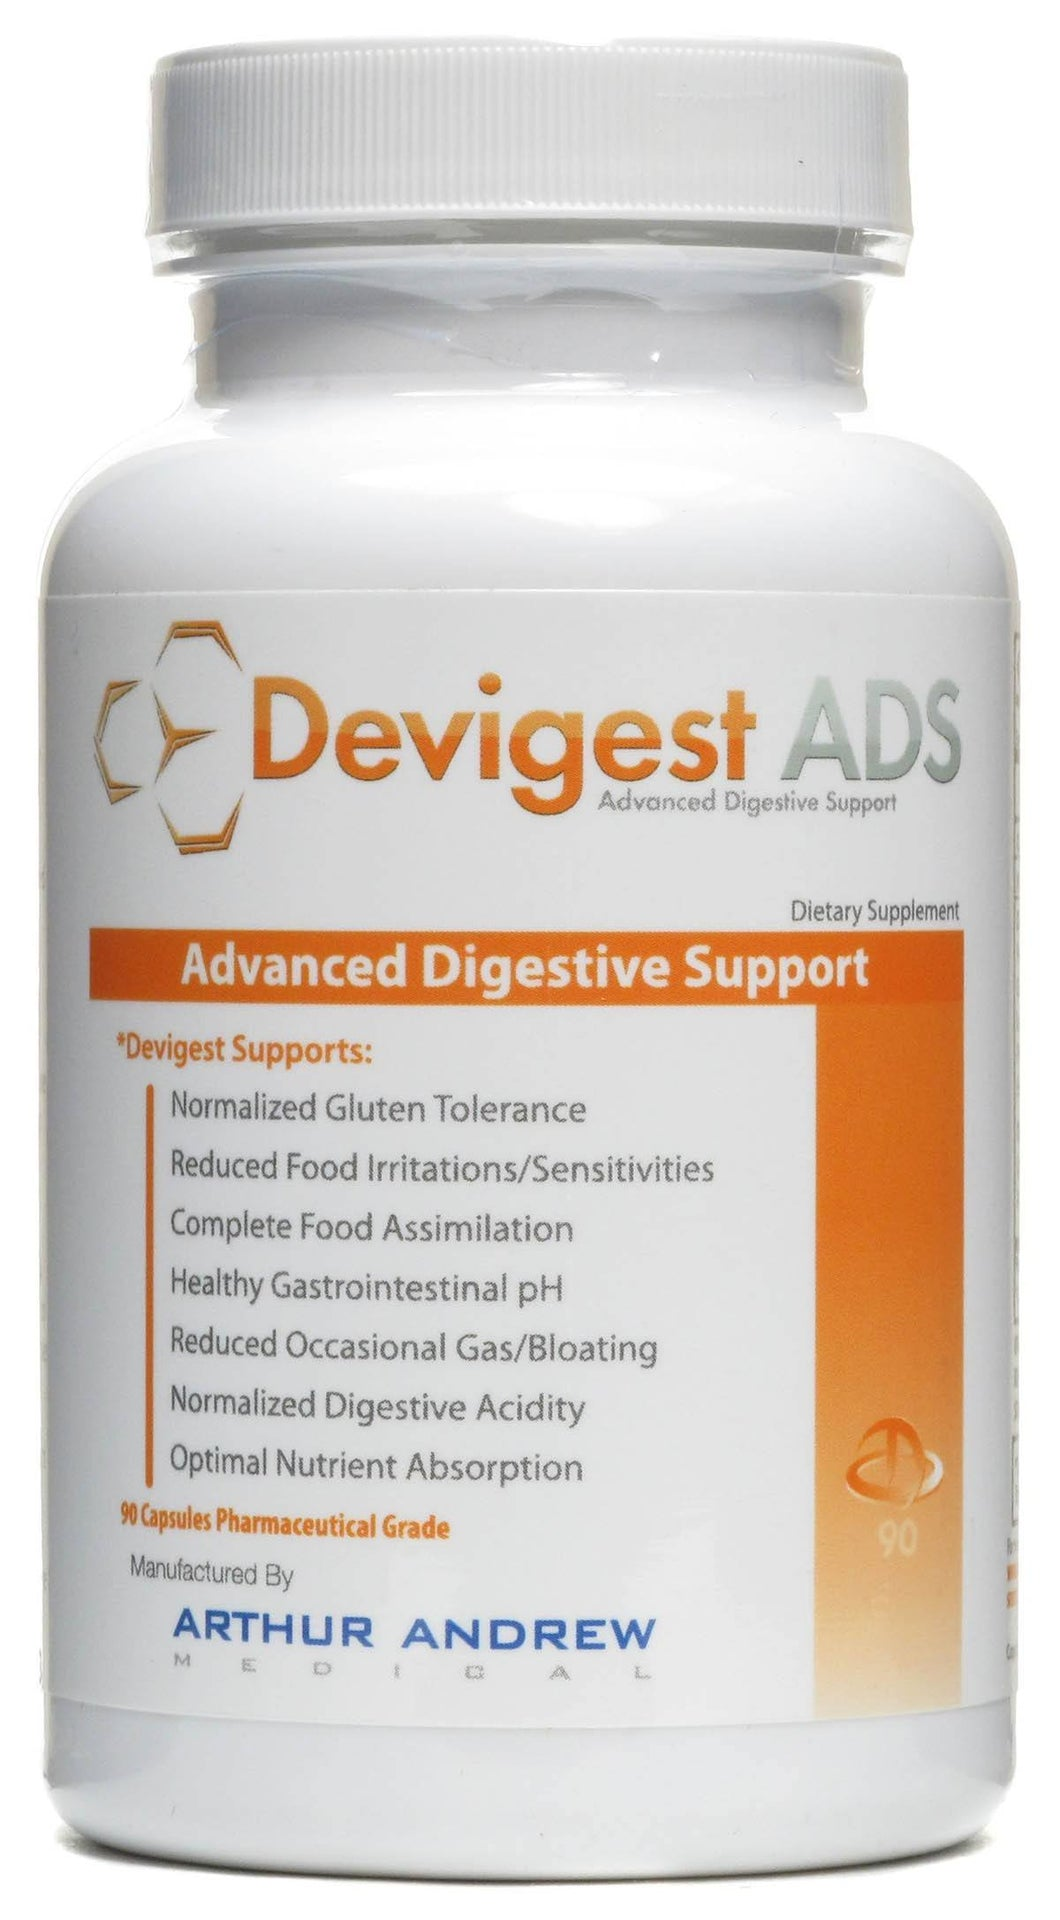 Dietary Supplement - Arthur Andrew Medical Devigest ADS 90 CAP